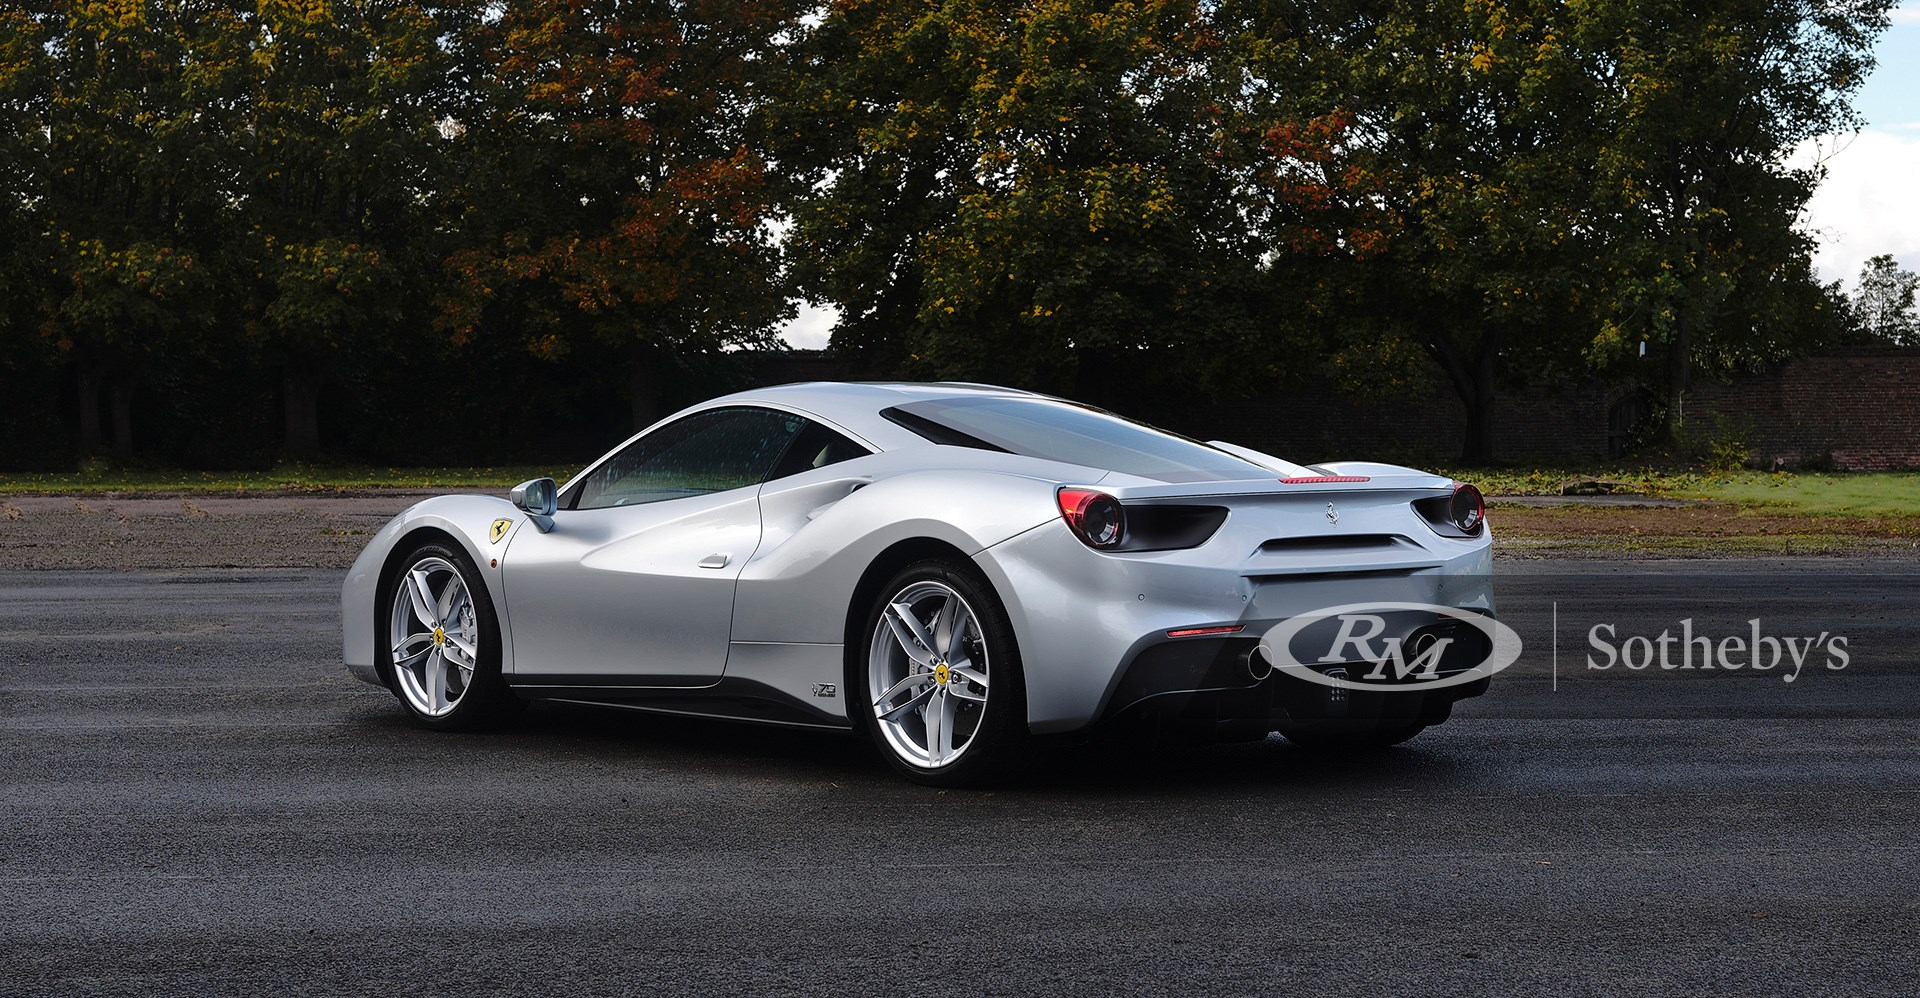 RM Sotheby's London 2020, Blog, 2018 Ferrari 488 GTB 70th Anniversary